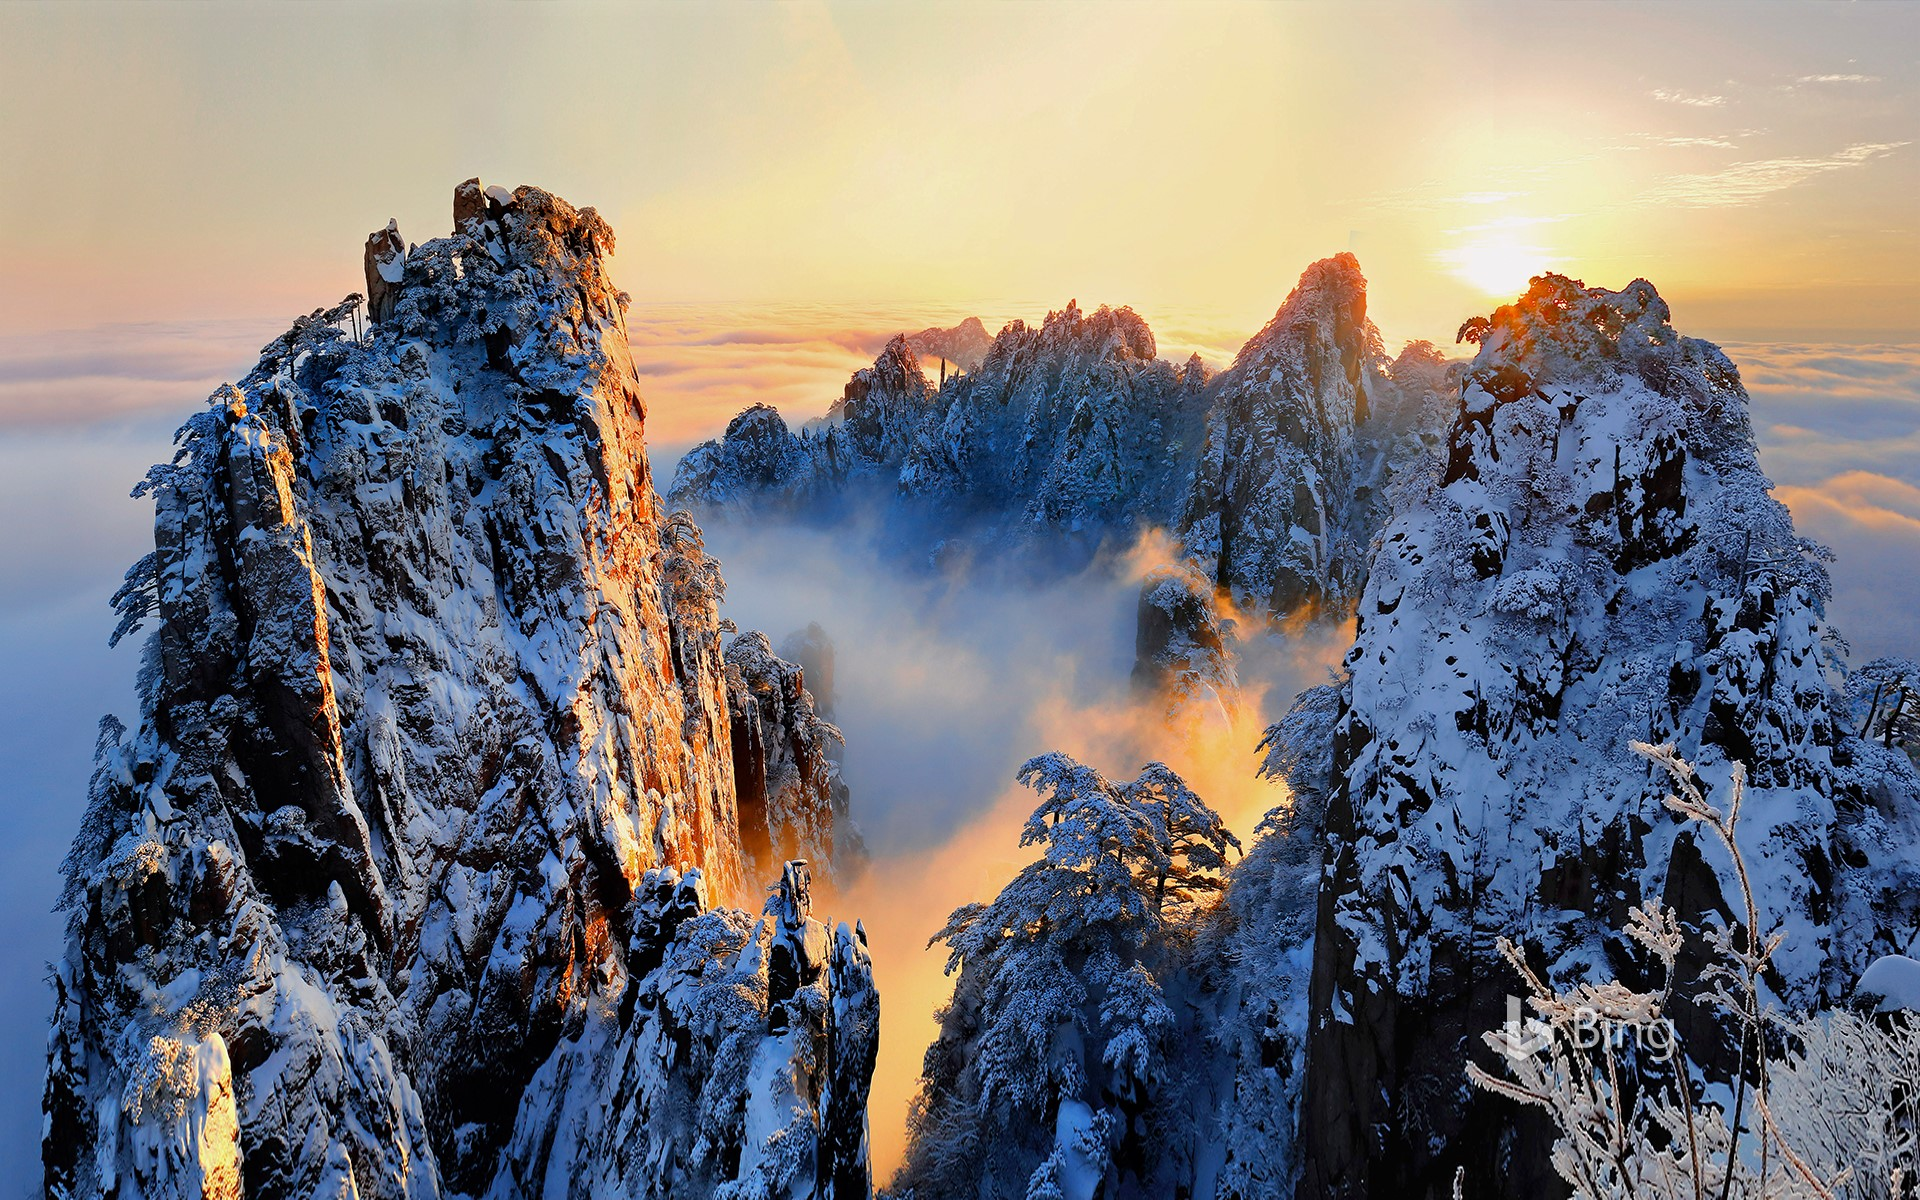 [Heavy Snow Today] Huangshan Scenic Area, Anhui Province